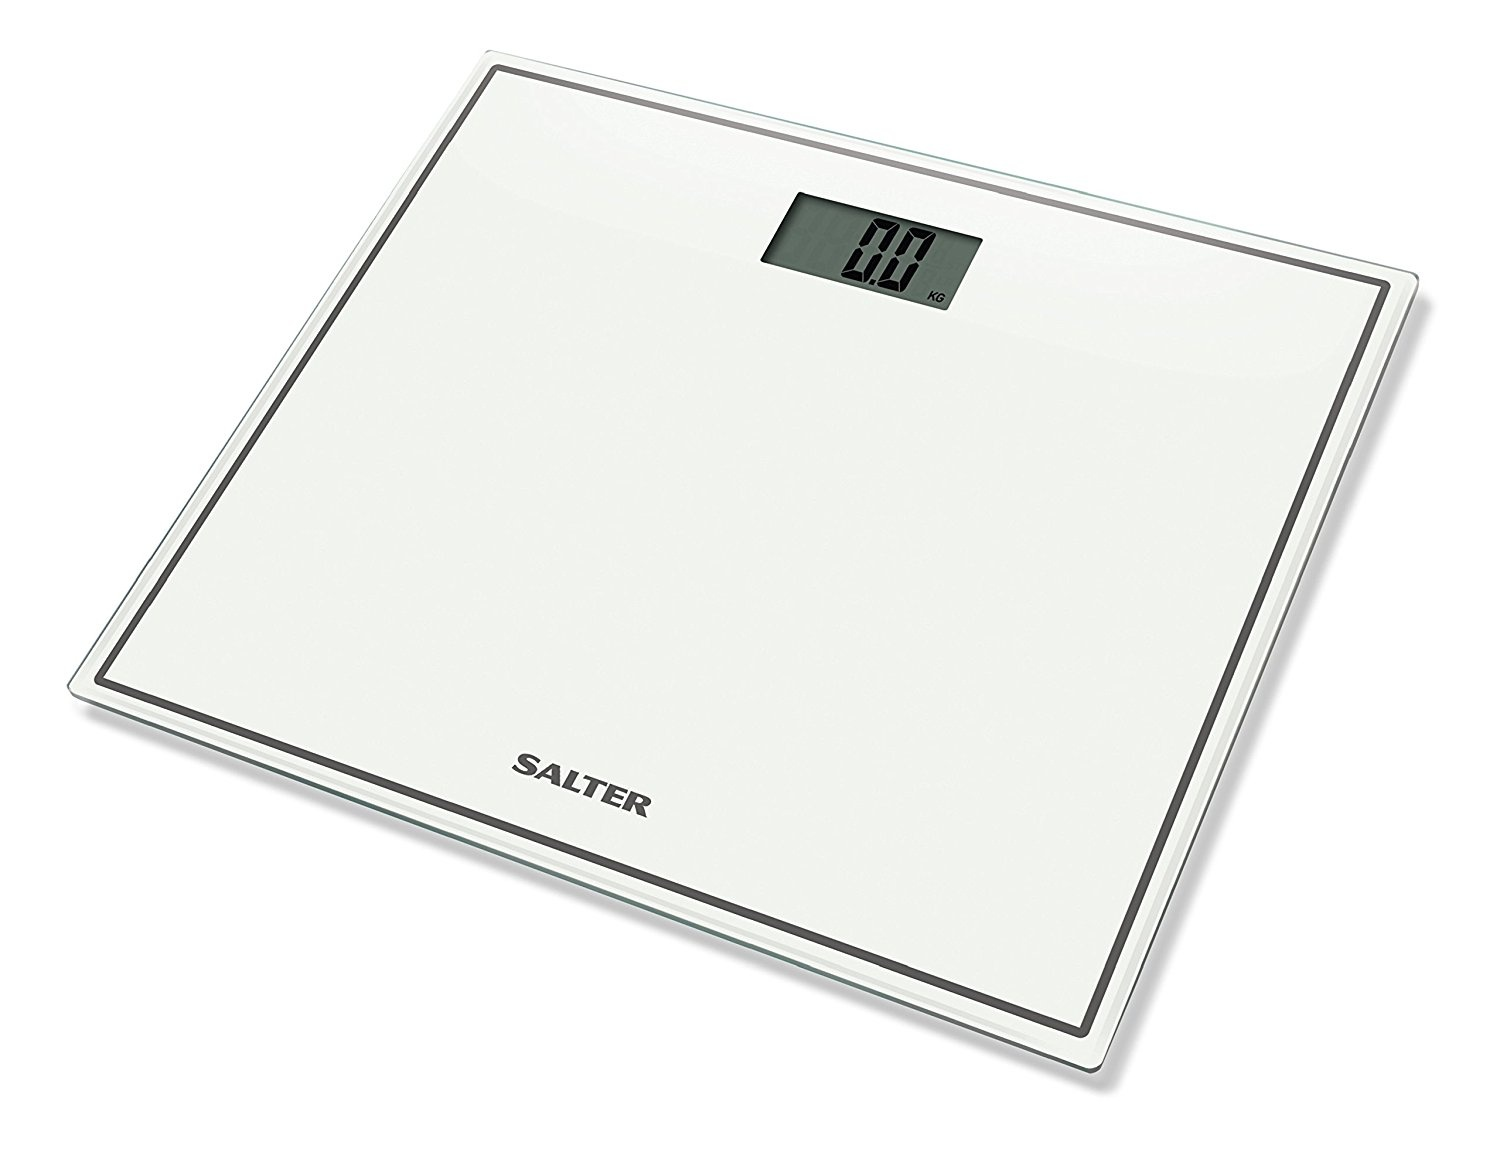 Sensational Salter 9207 Wh3R Compact Glass Electronic Bathroom Scale White Download Free Architecture Designs Momecebritishbridgeorg